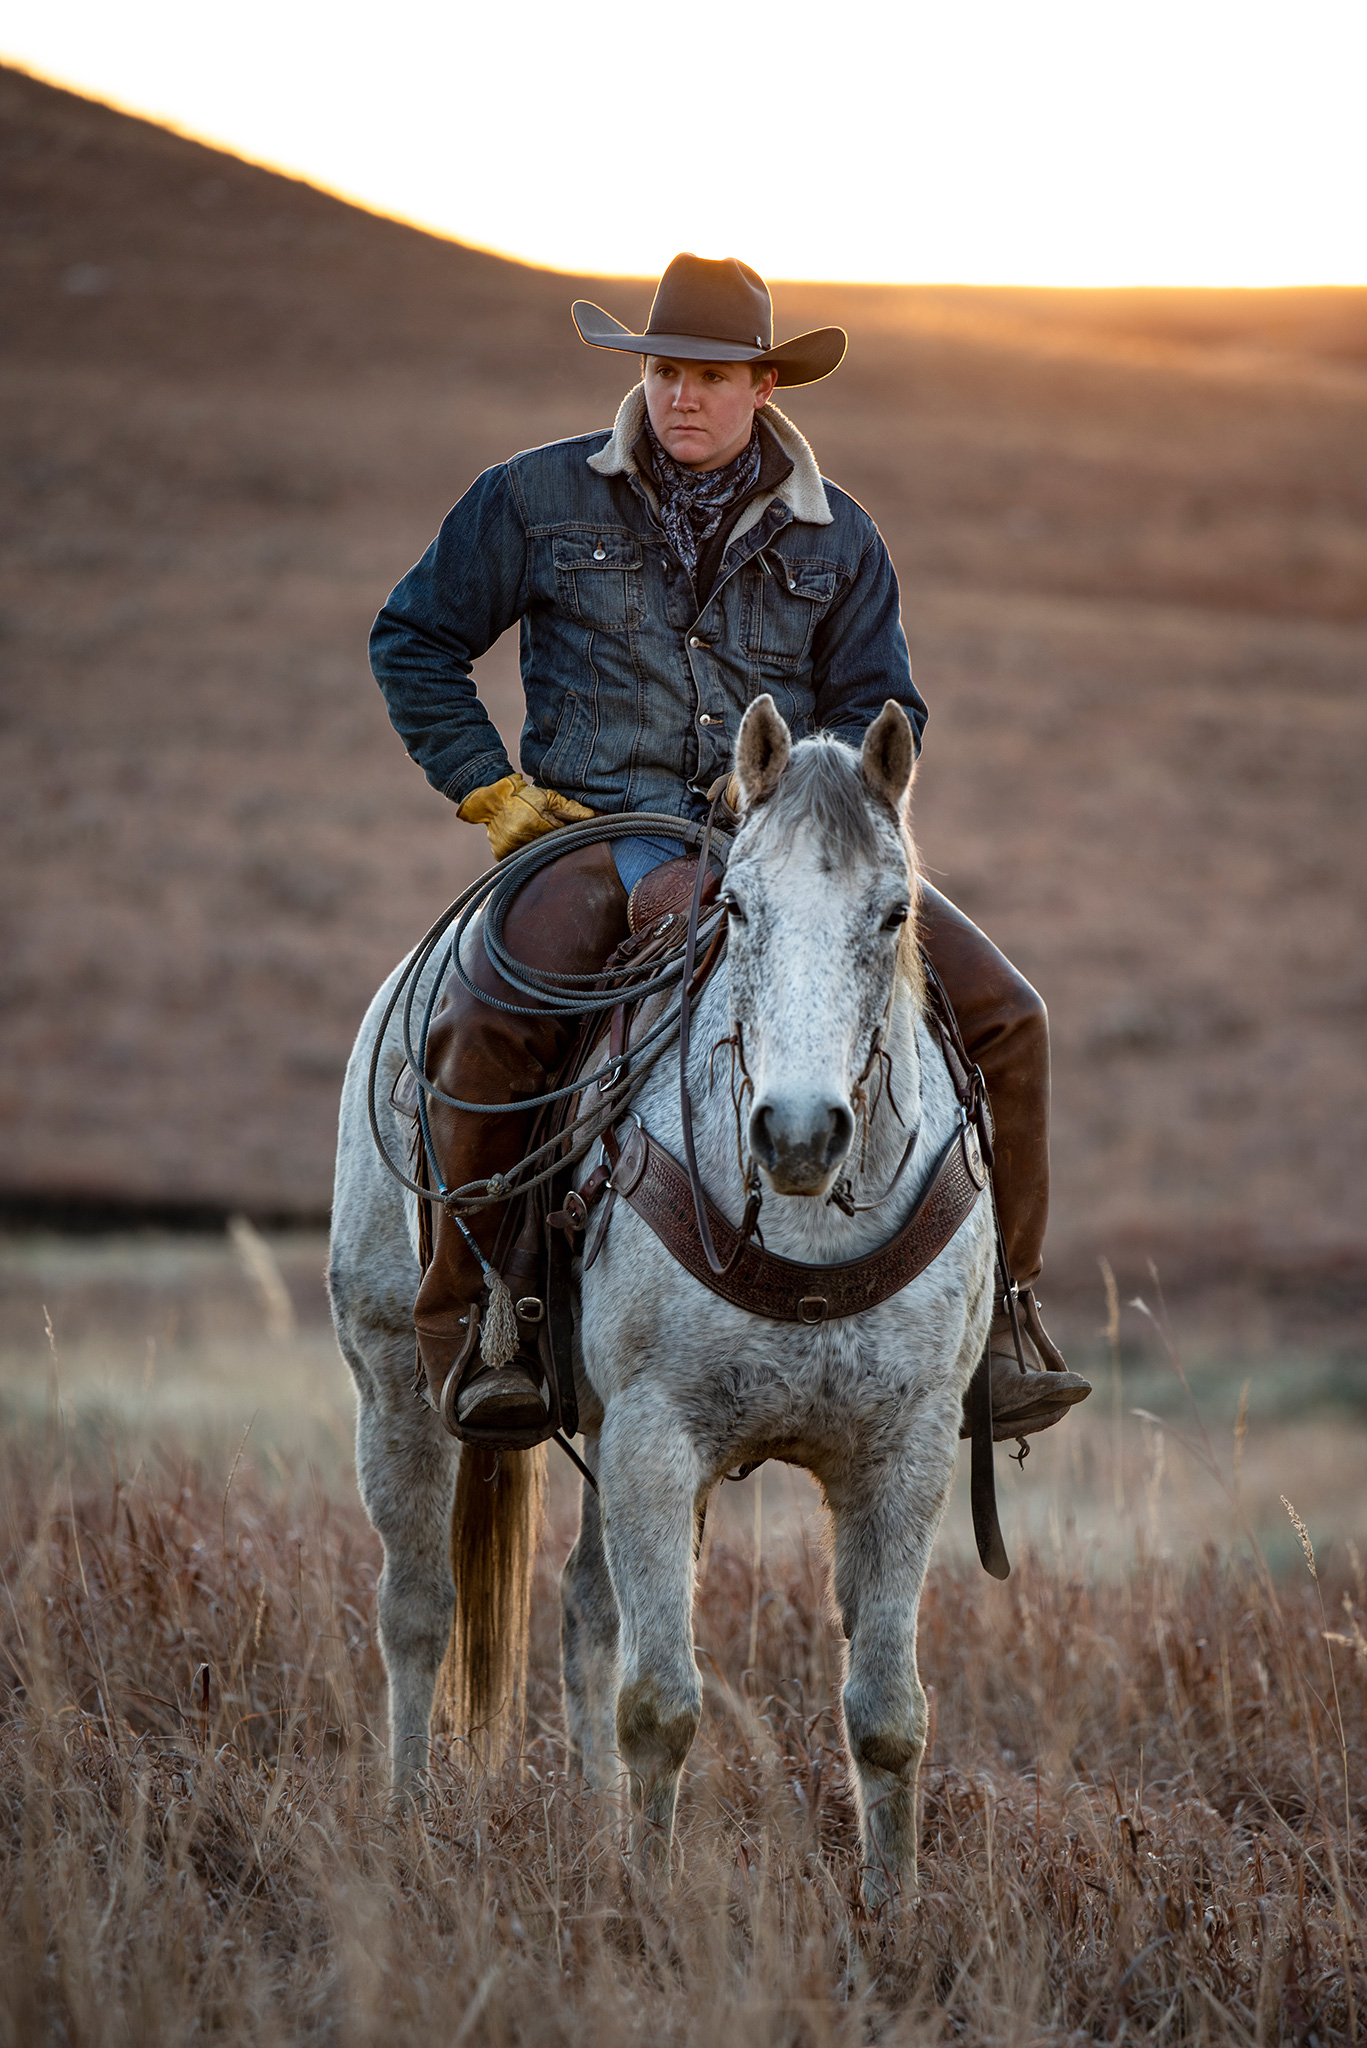 cowboy-on-horse-in-sunrise.jpg